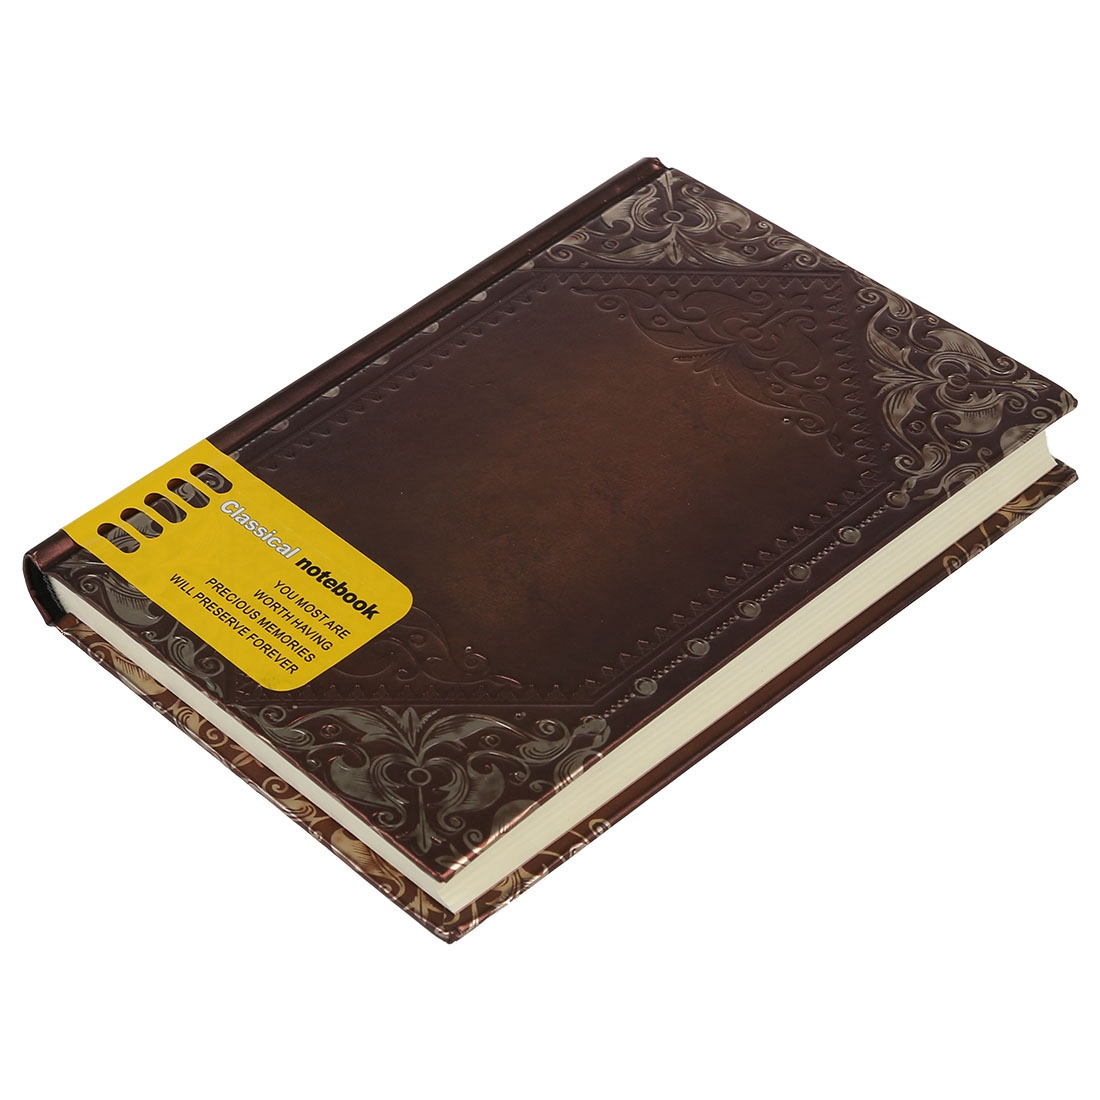 Retro Vintage Personal Notebook Diary Journal Organiser Book School Office Use Dark brown(China (Mainland))